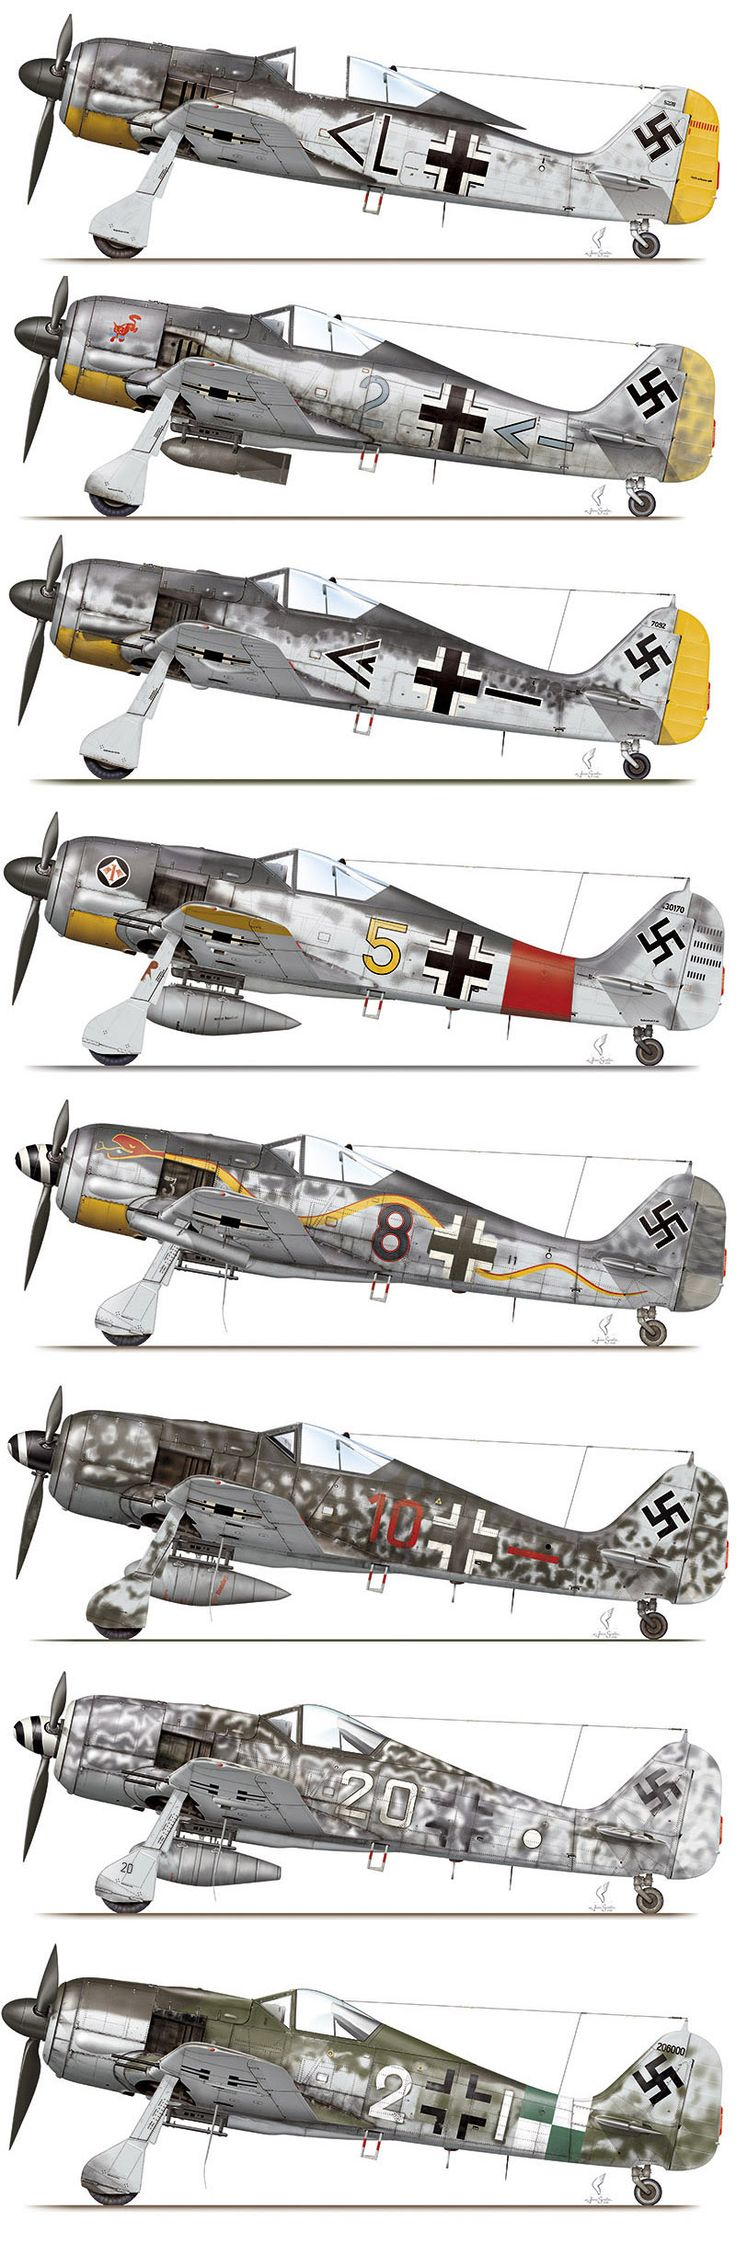 War Machines - Nazi Germany Focke Wulf Fw 190